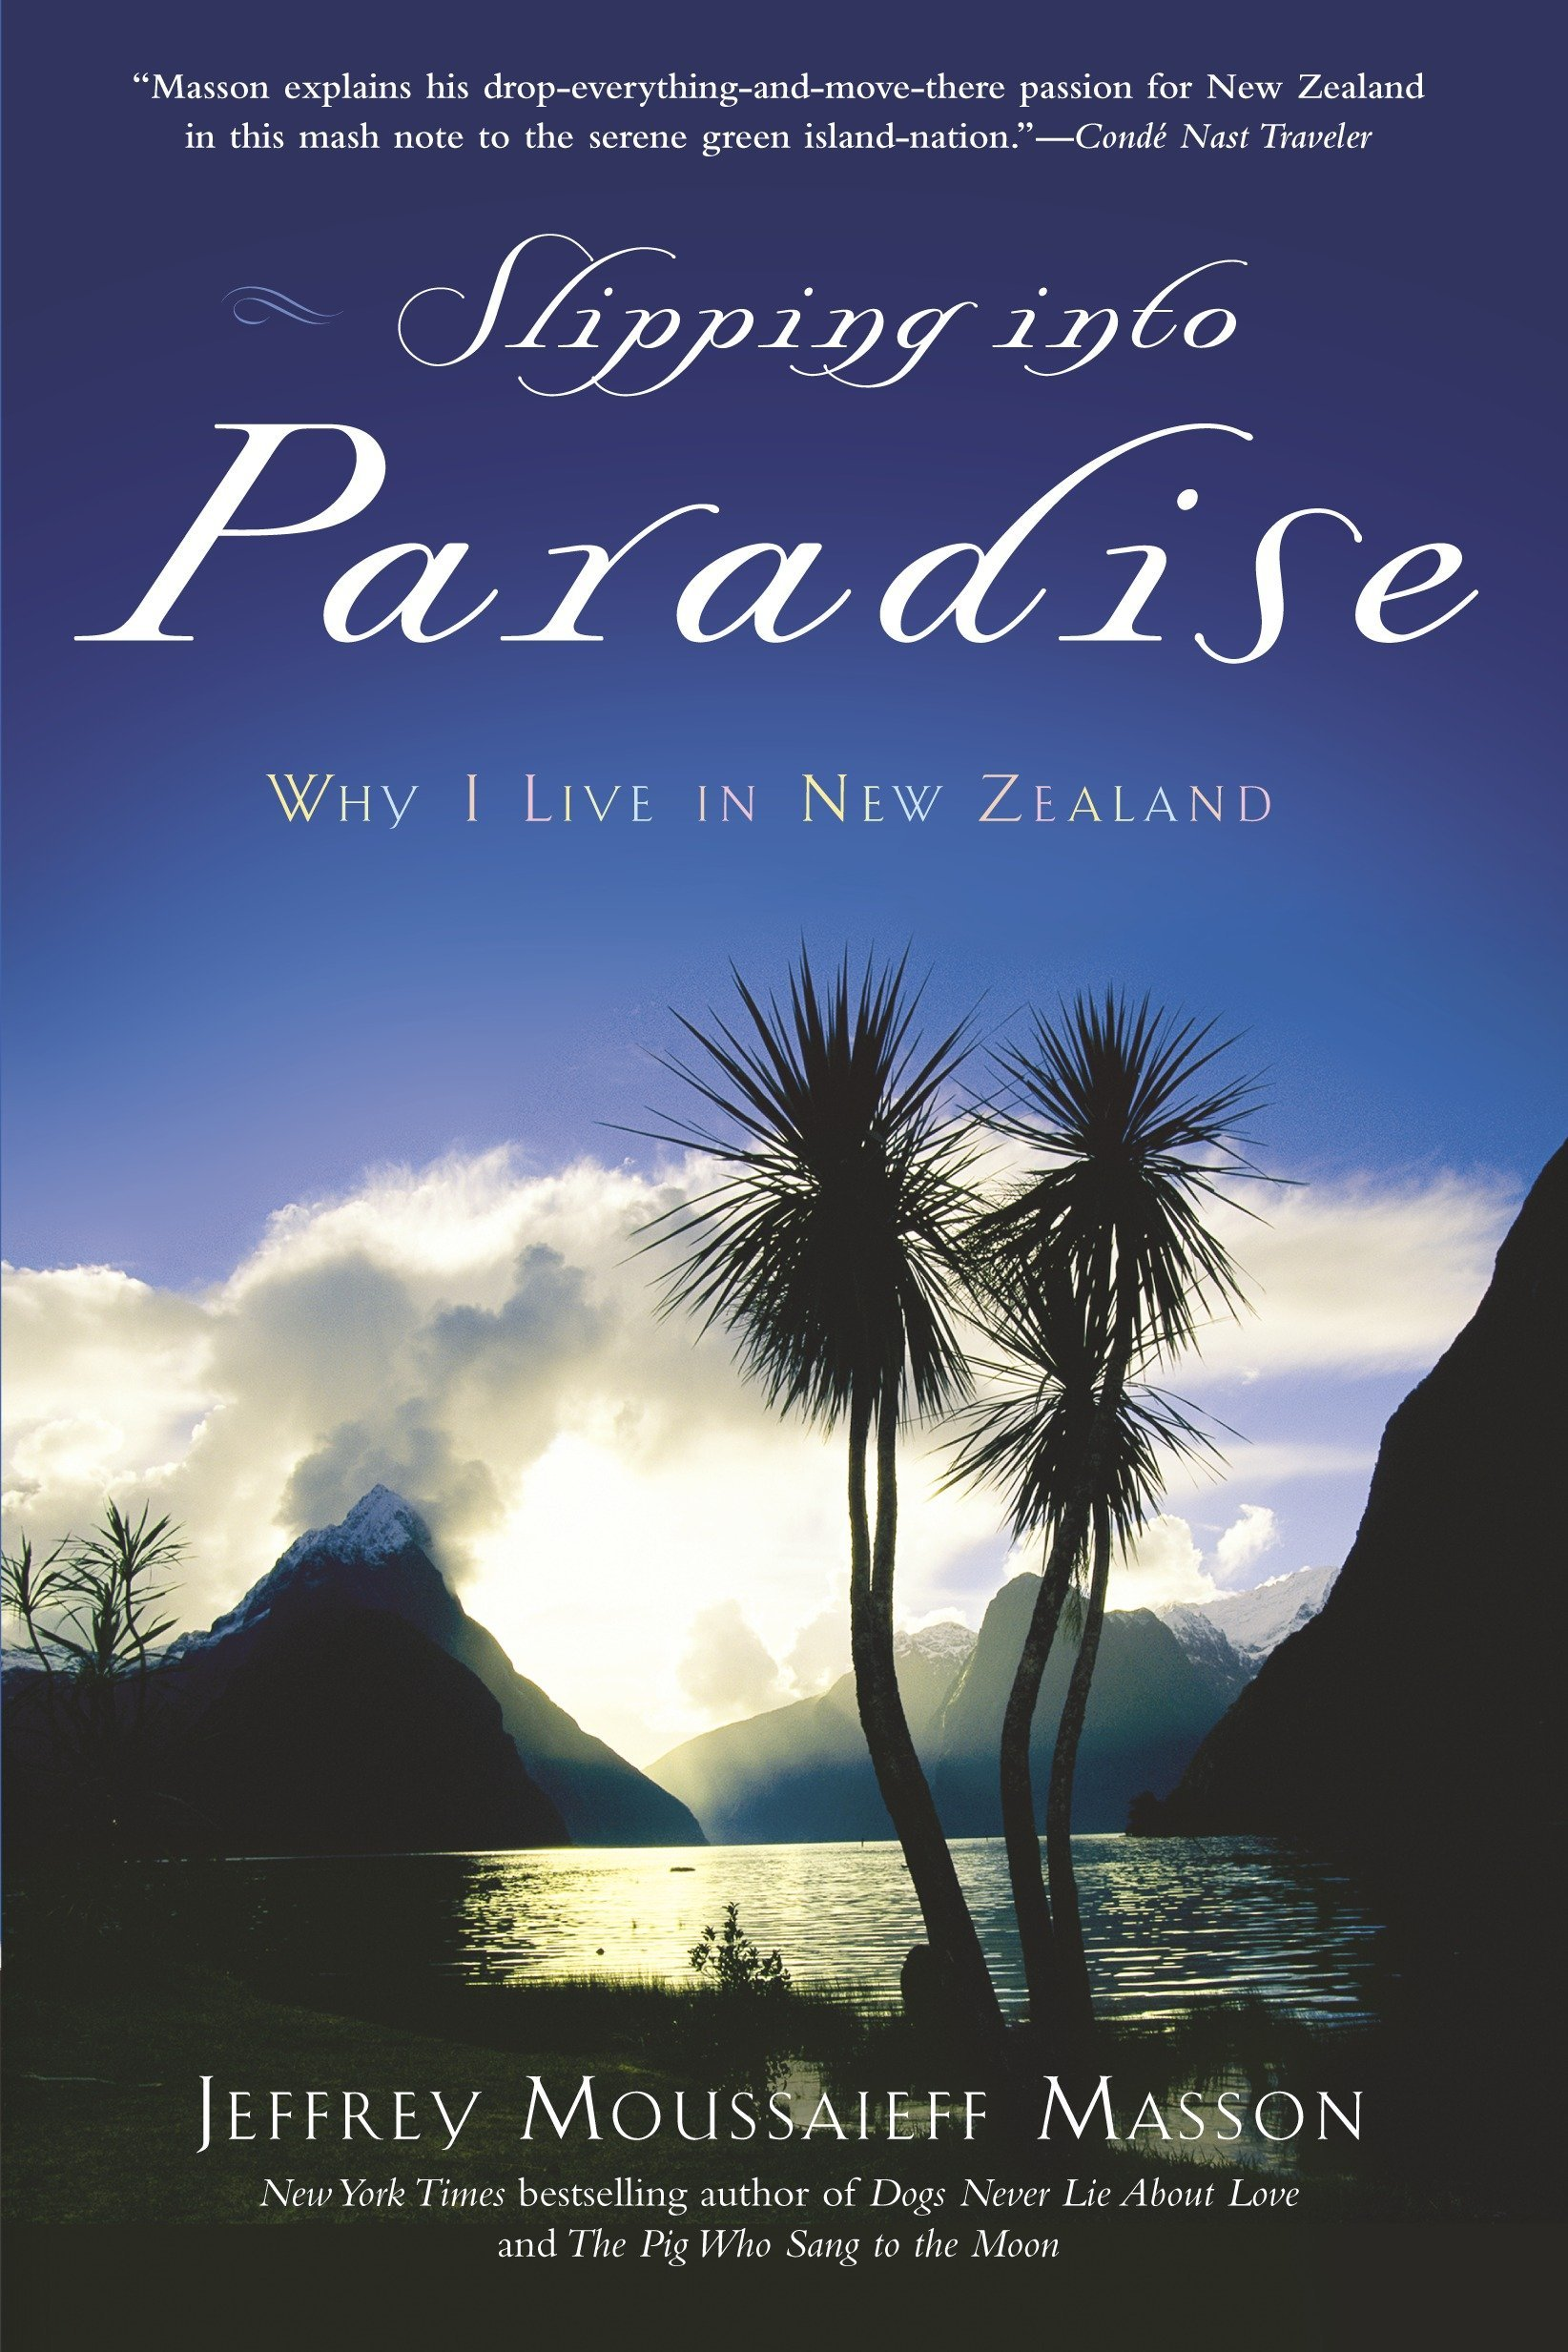 Book giveaways nz